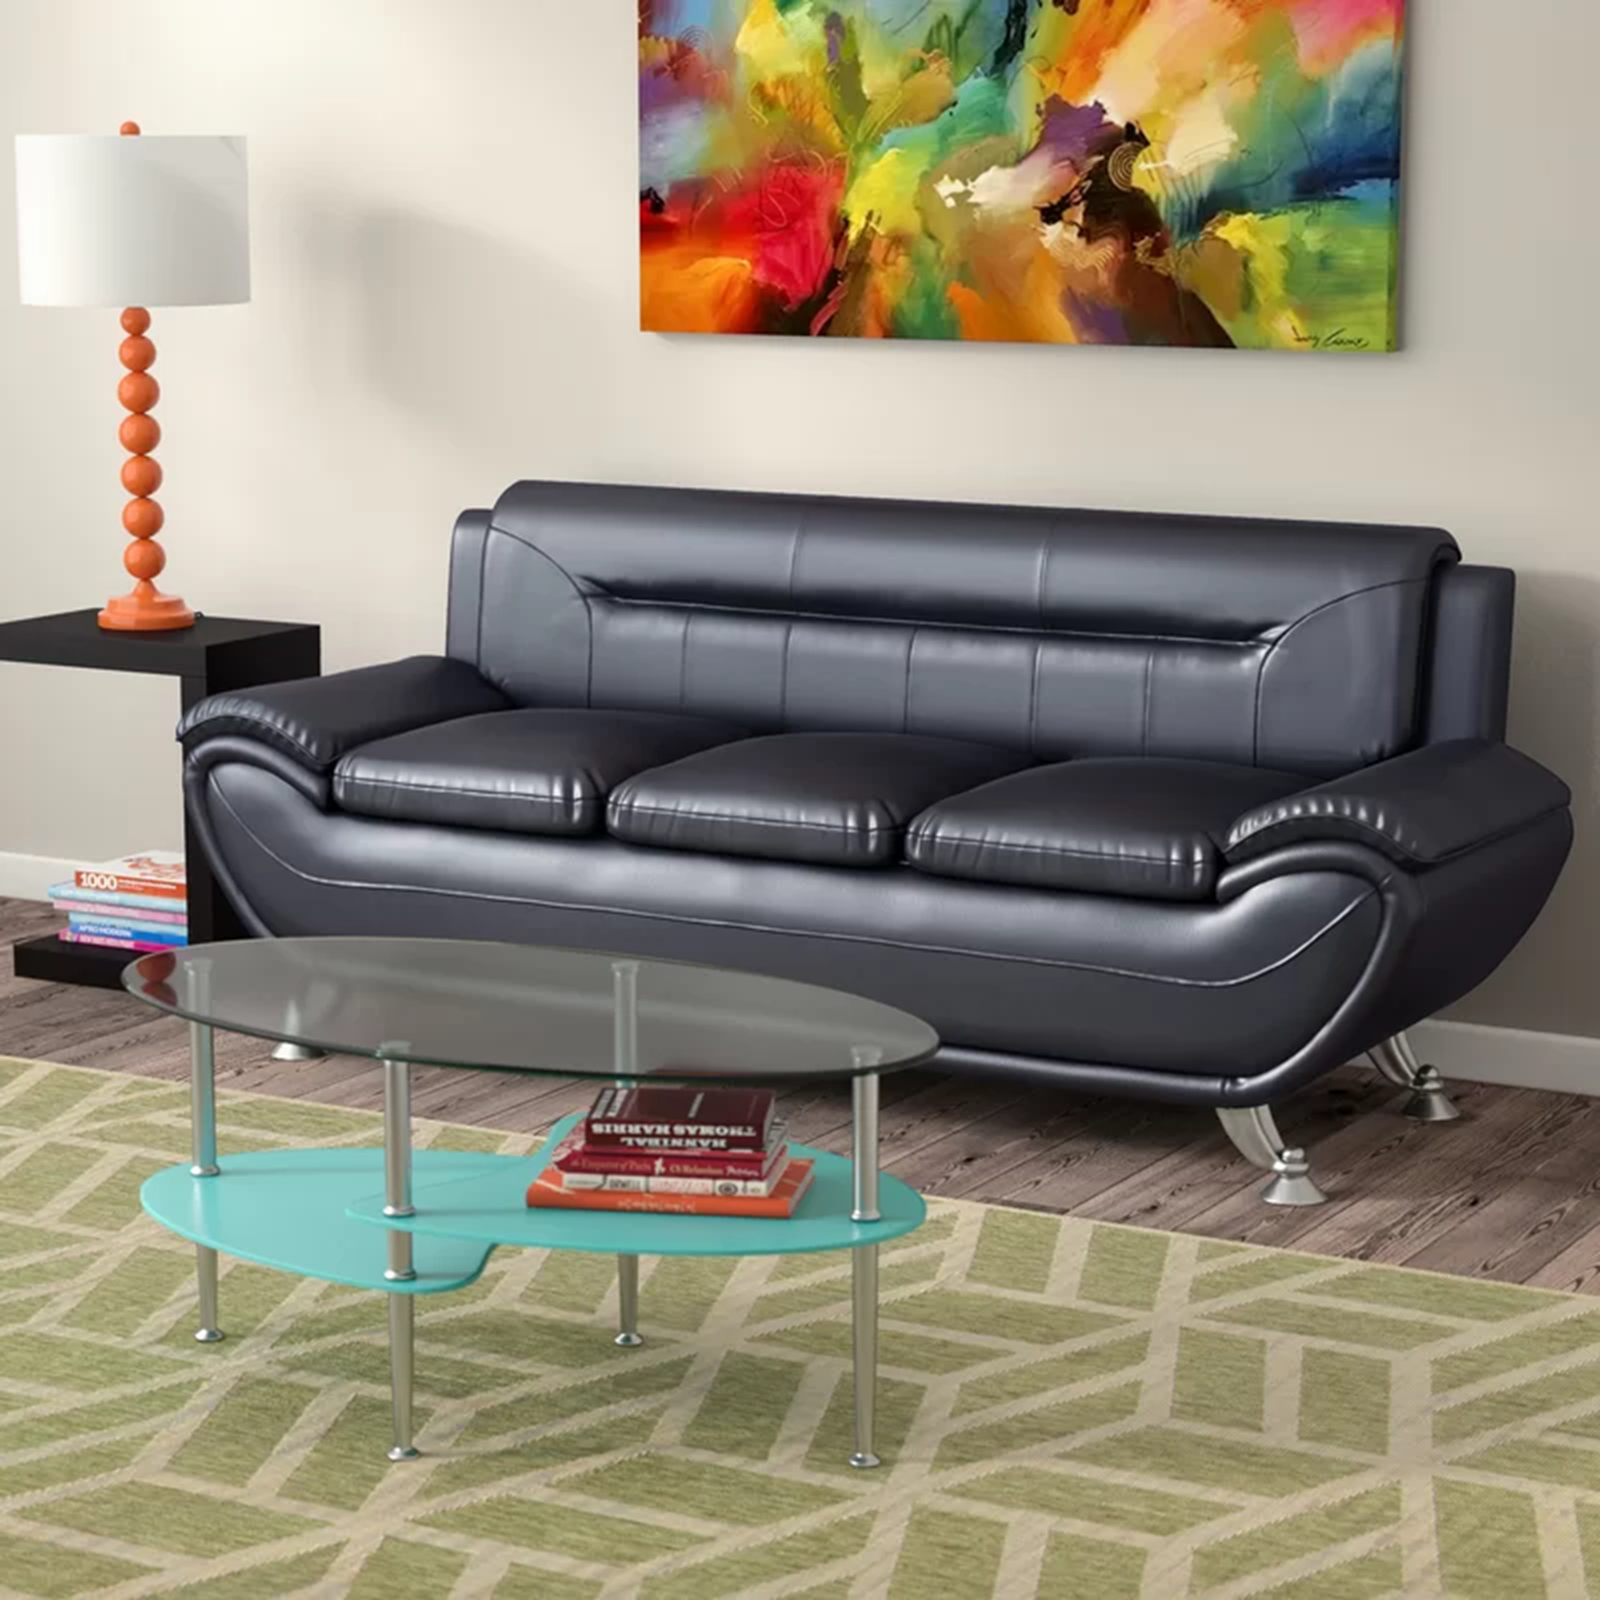 Greatime S2301 Gray leatherette sofa and Love seat Sets